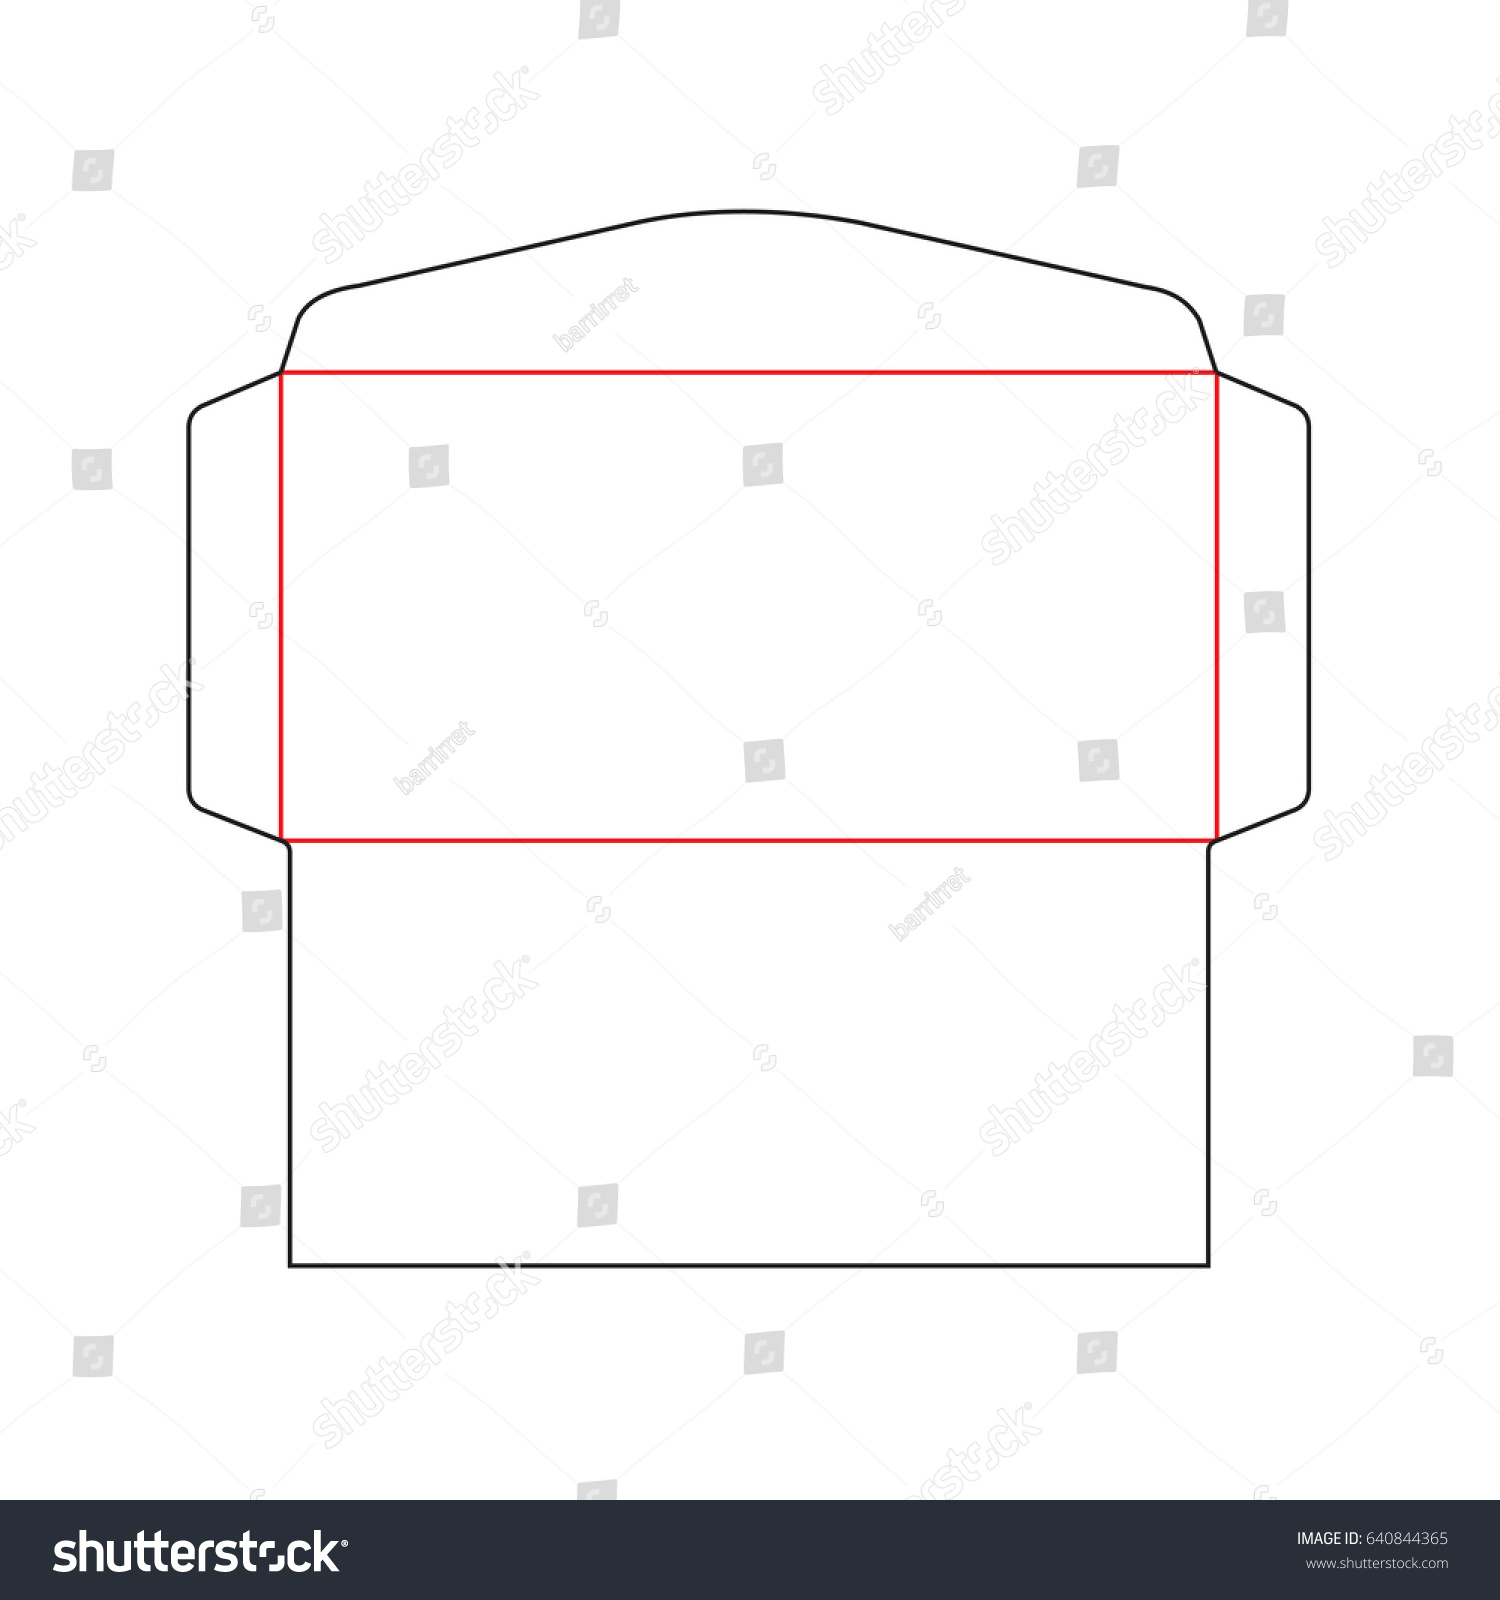 Envelope DL Size Die Cut Template Stock Vector (Royalty Free ...